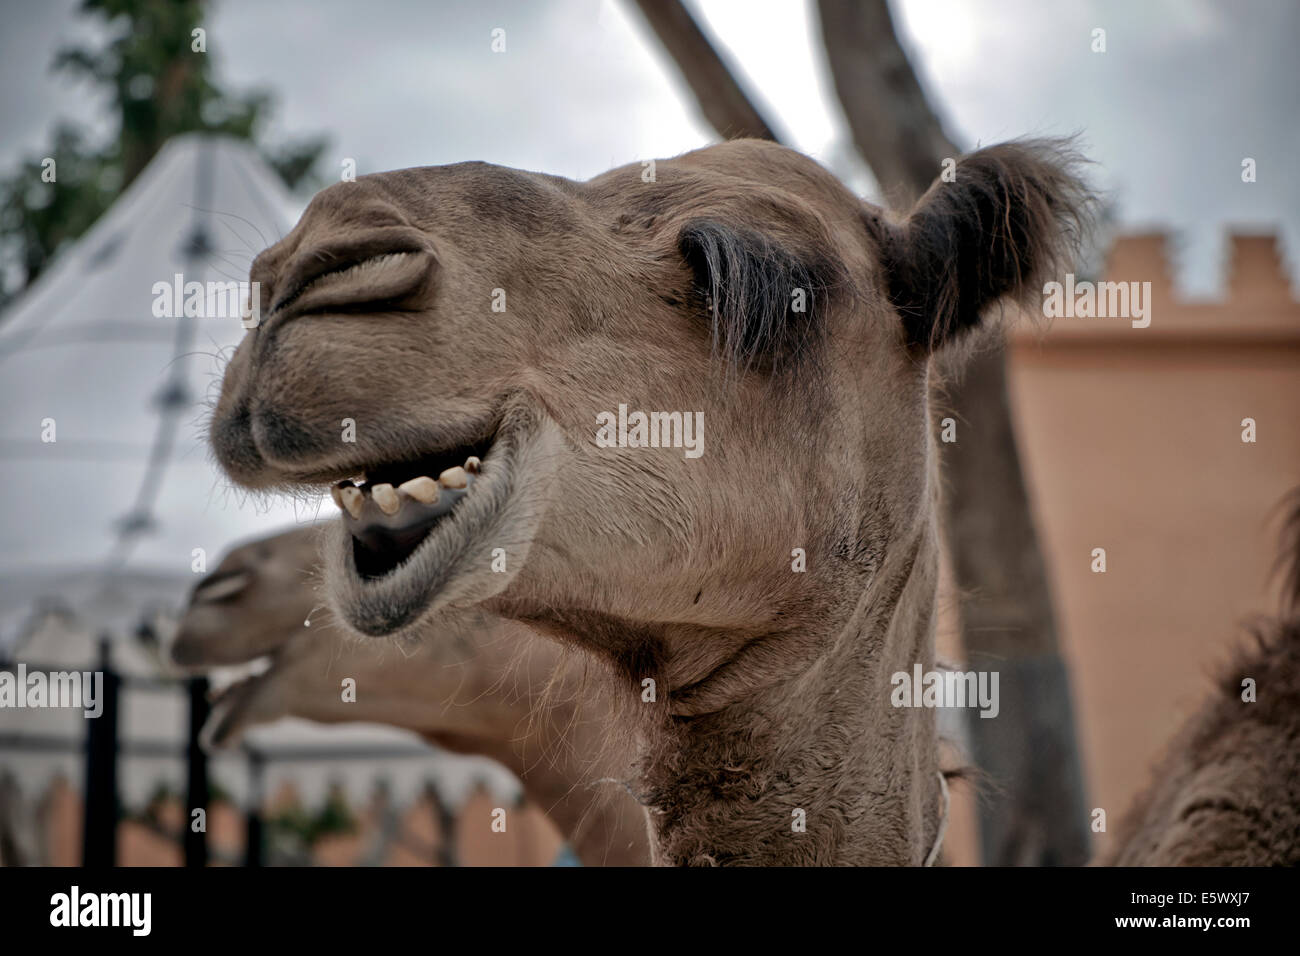 Camel funny animal face laughing Stock Photo, Royalty Free ... - photo#25